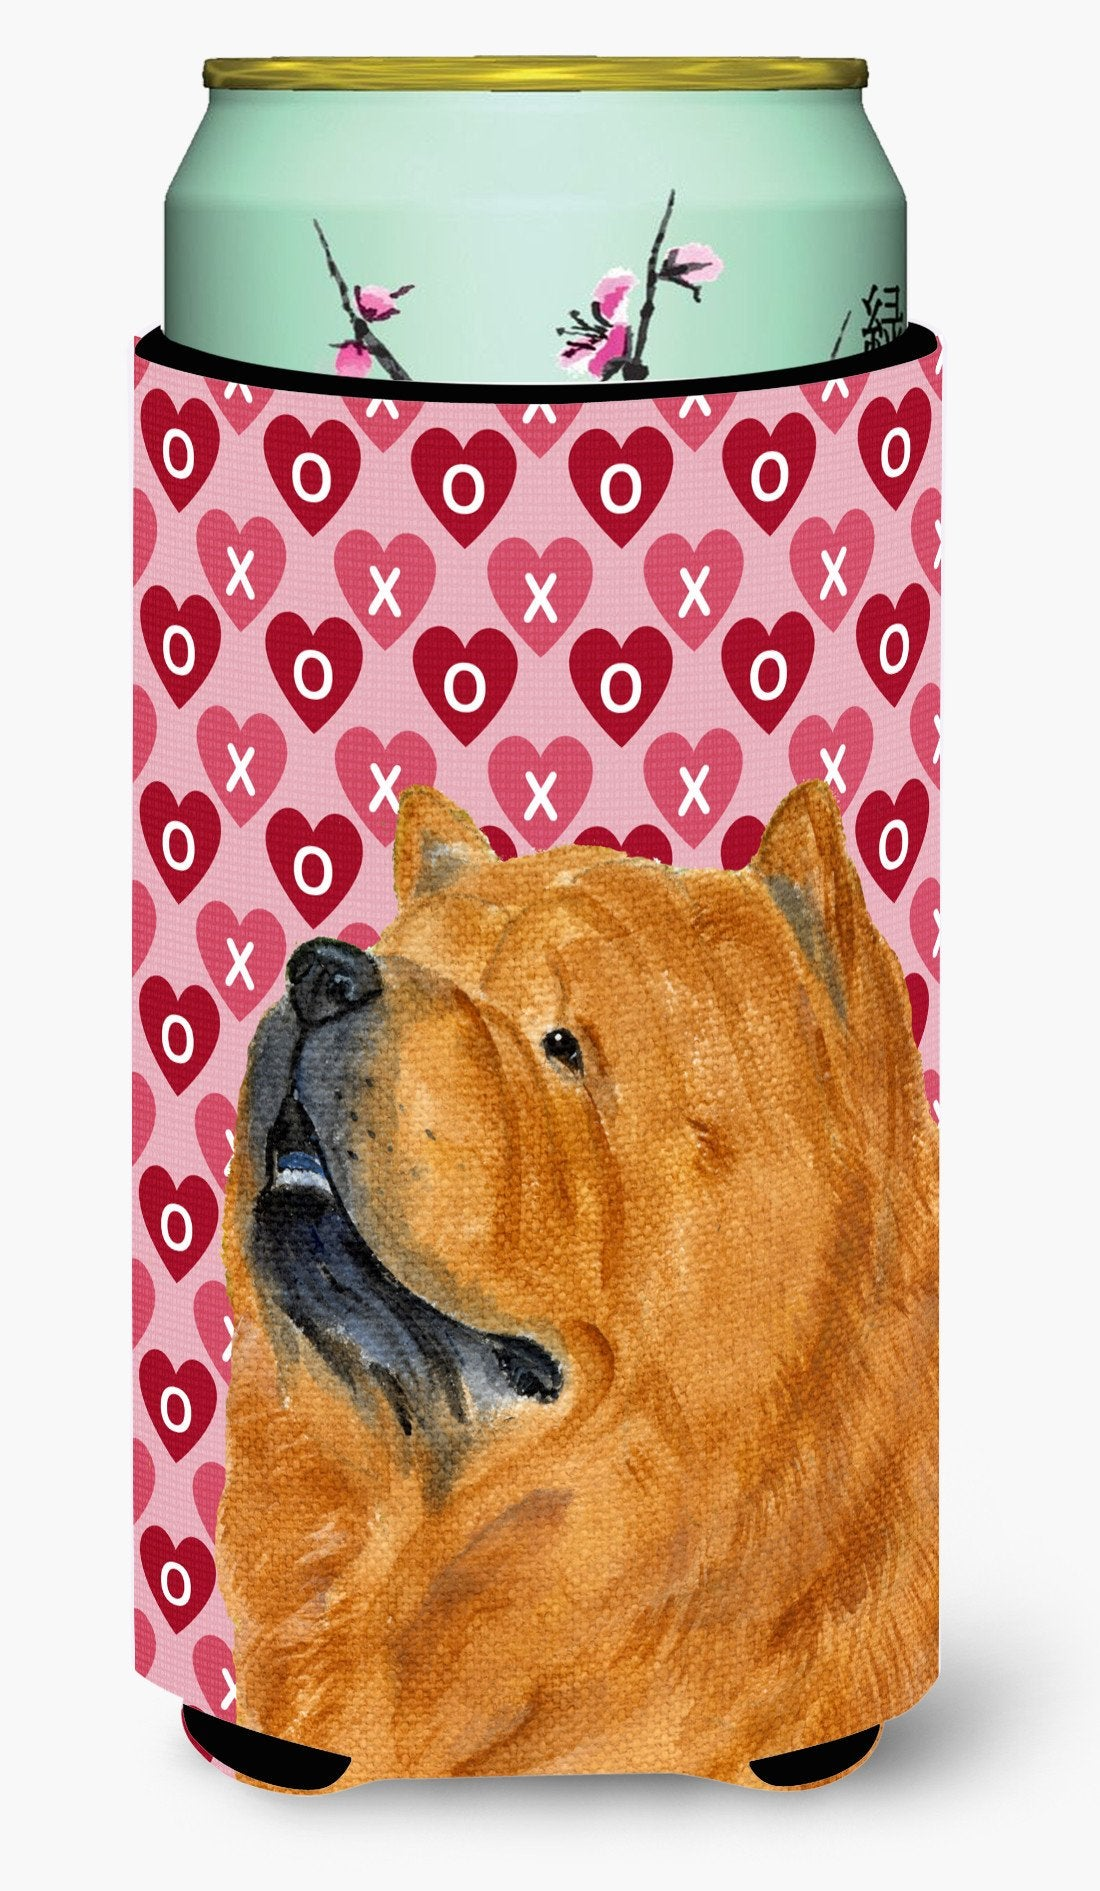 Chow Chow Hearts Love and Valentine's Day Portrait  Tall Boy Beverage Insulator Beverage Insulator Hugger by Caroline's Treasures